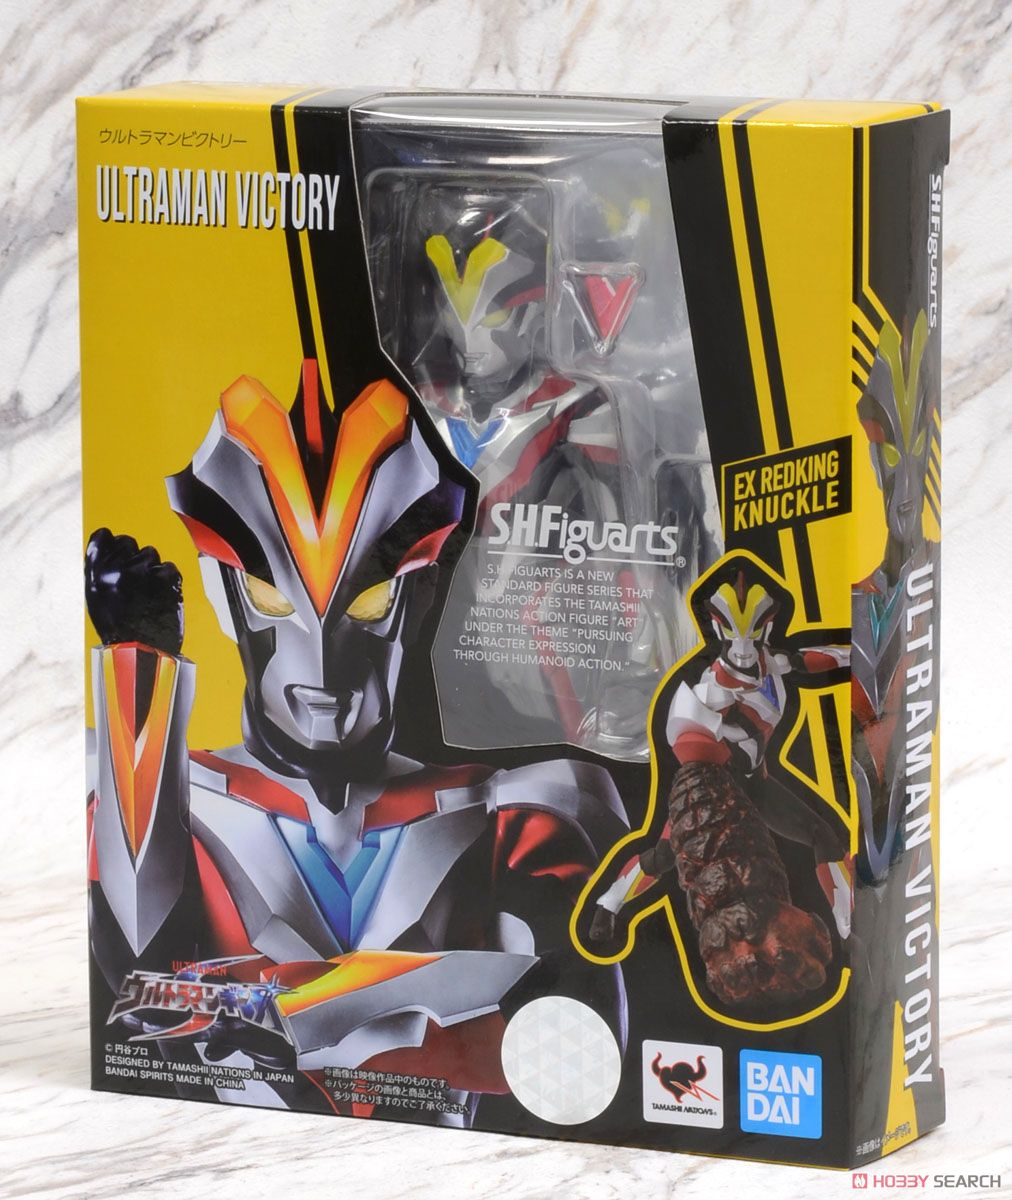 S.H.Figuarts Ultraman Victory (Completed) Package1